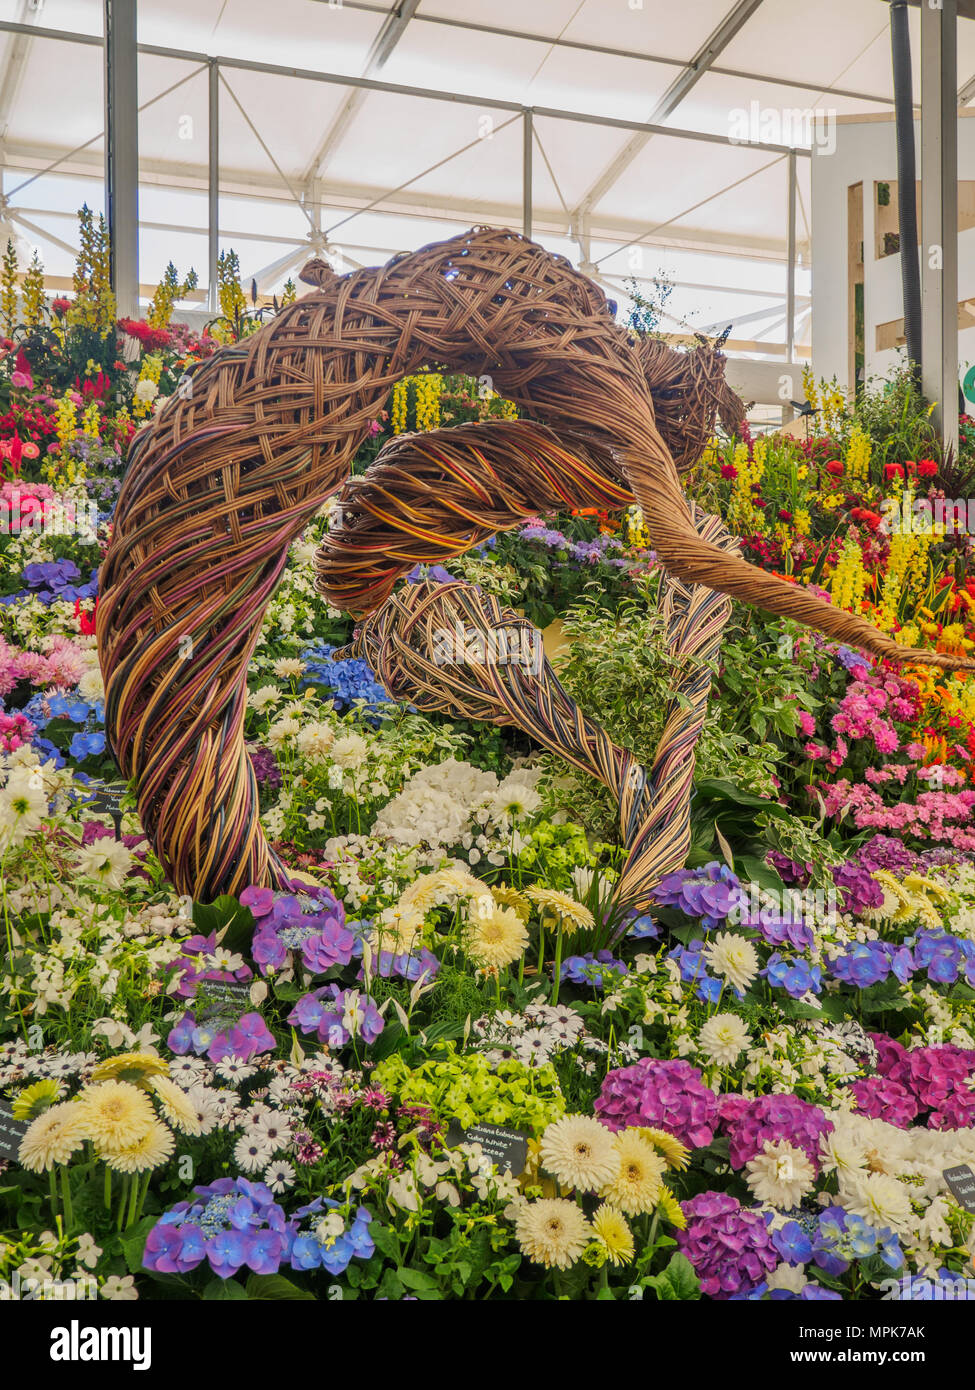 Display roses chelsea flower show stock photos display roses chelsea flower show stock images - Chelsea flower show gold medal winners ...